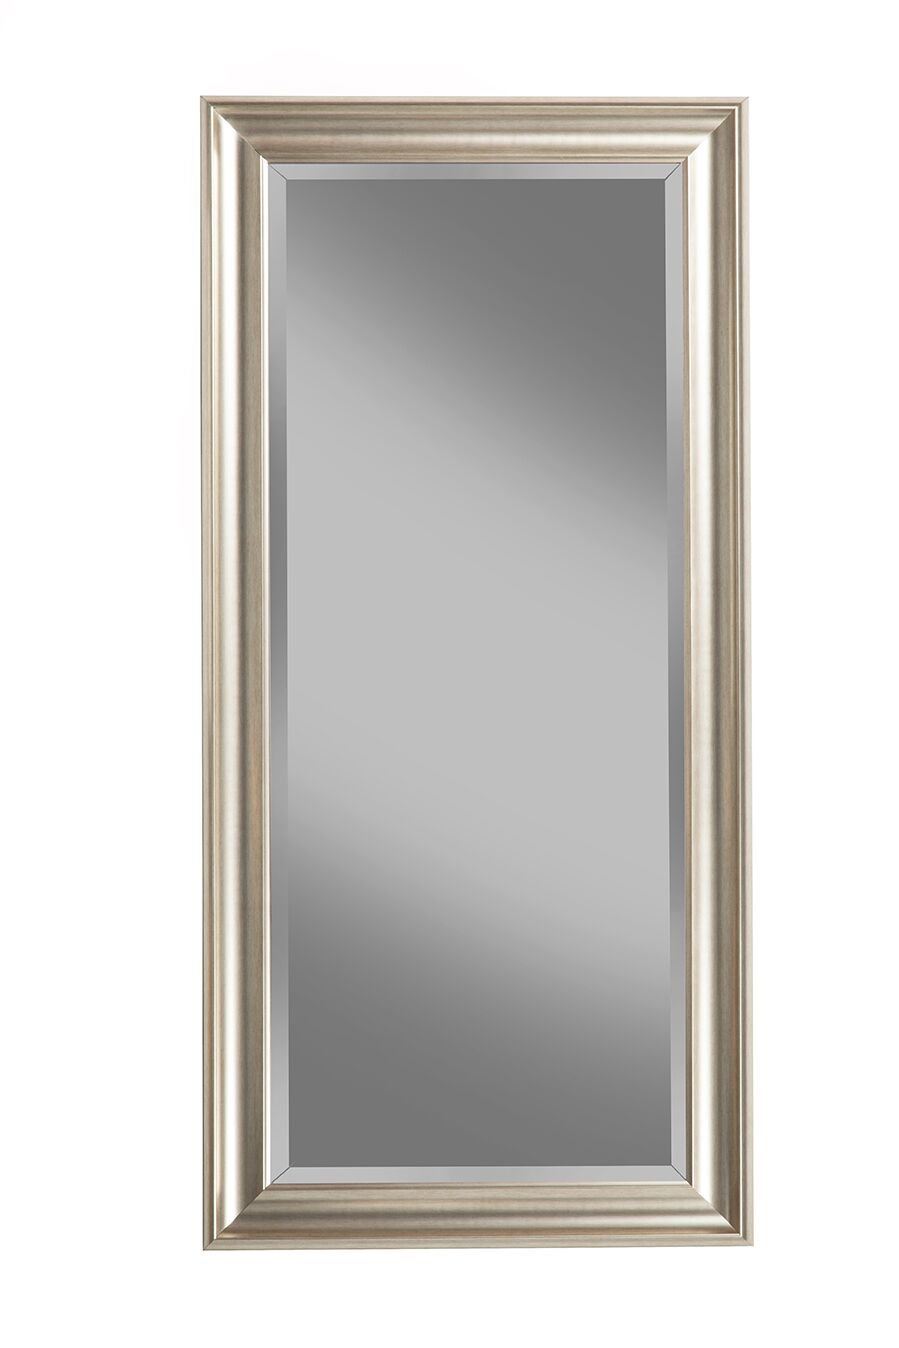 Beveled Mirror Trim Kits Full Length Leaner Mirror Champagne Silver 65